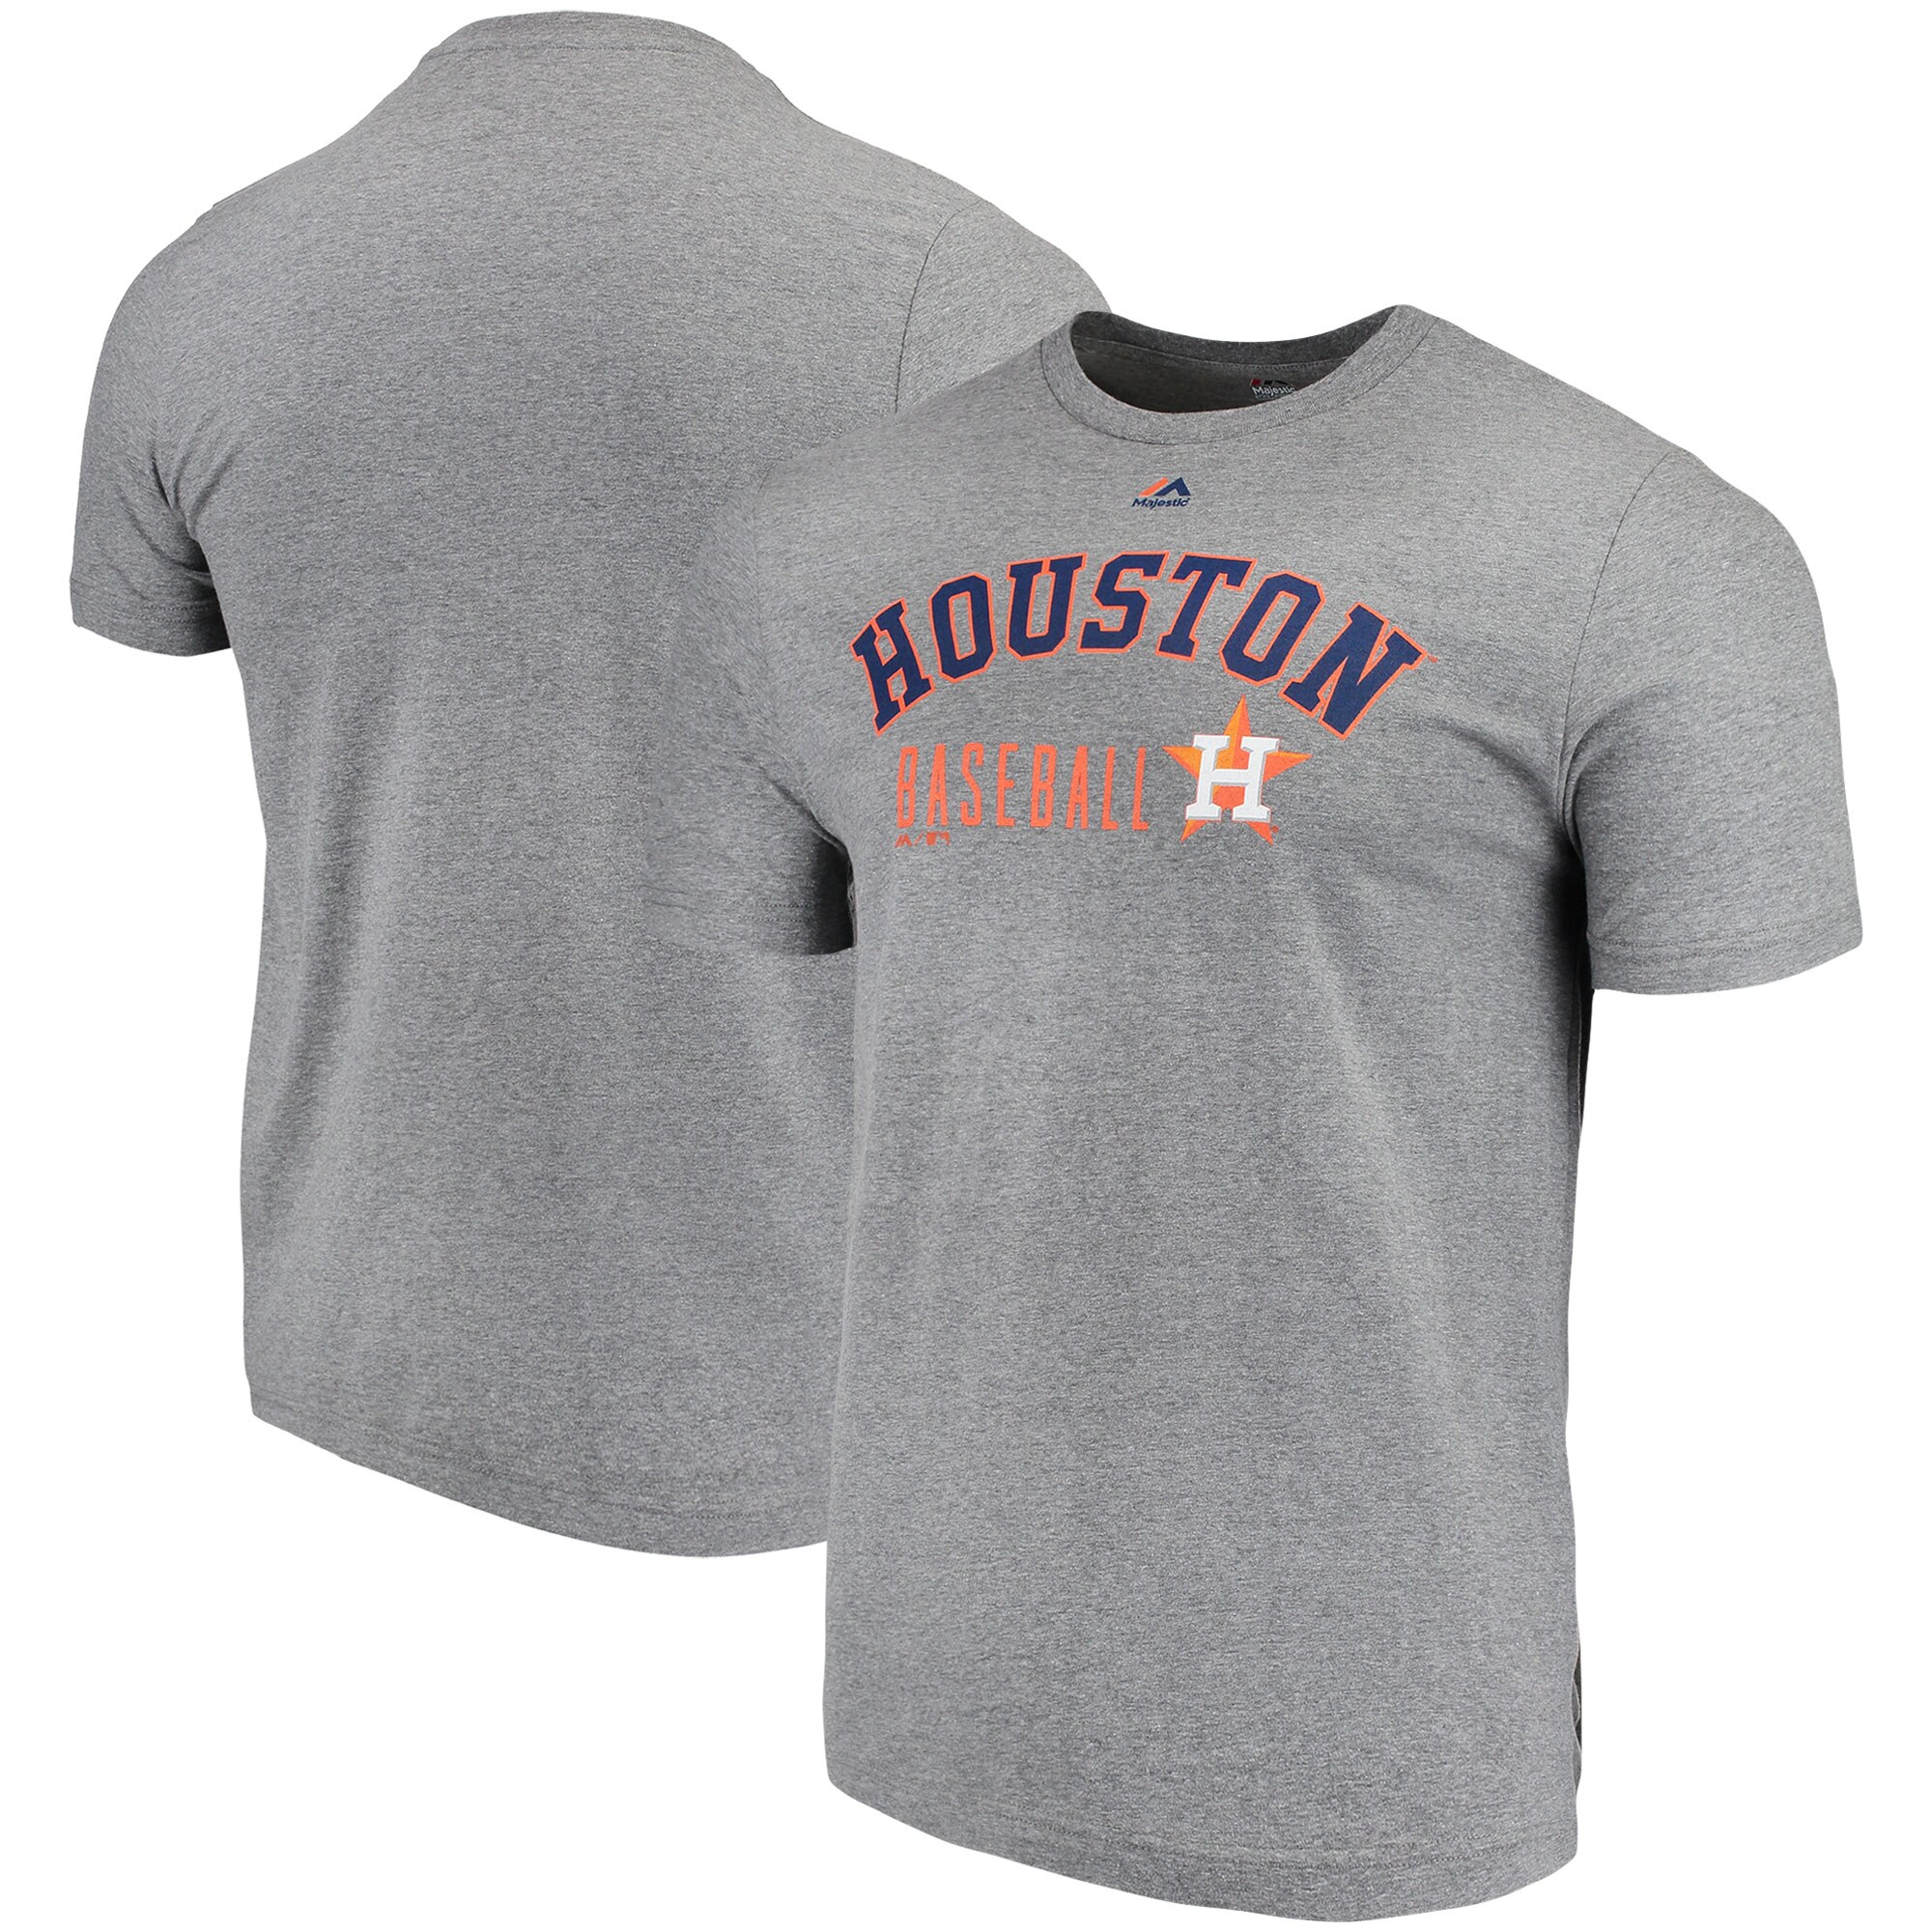 Houston Astros Majestic Open Opportunity Domestic T-Shirt - Heathered Gray